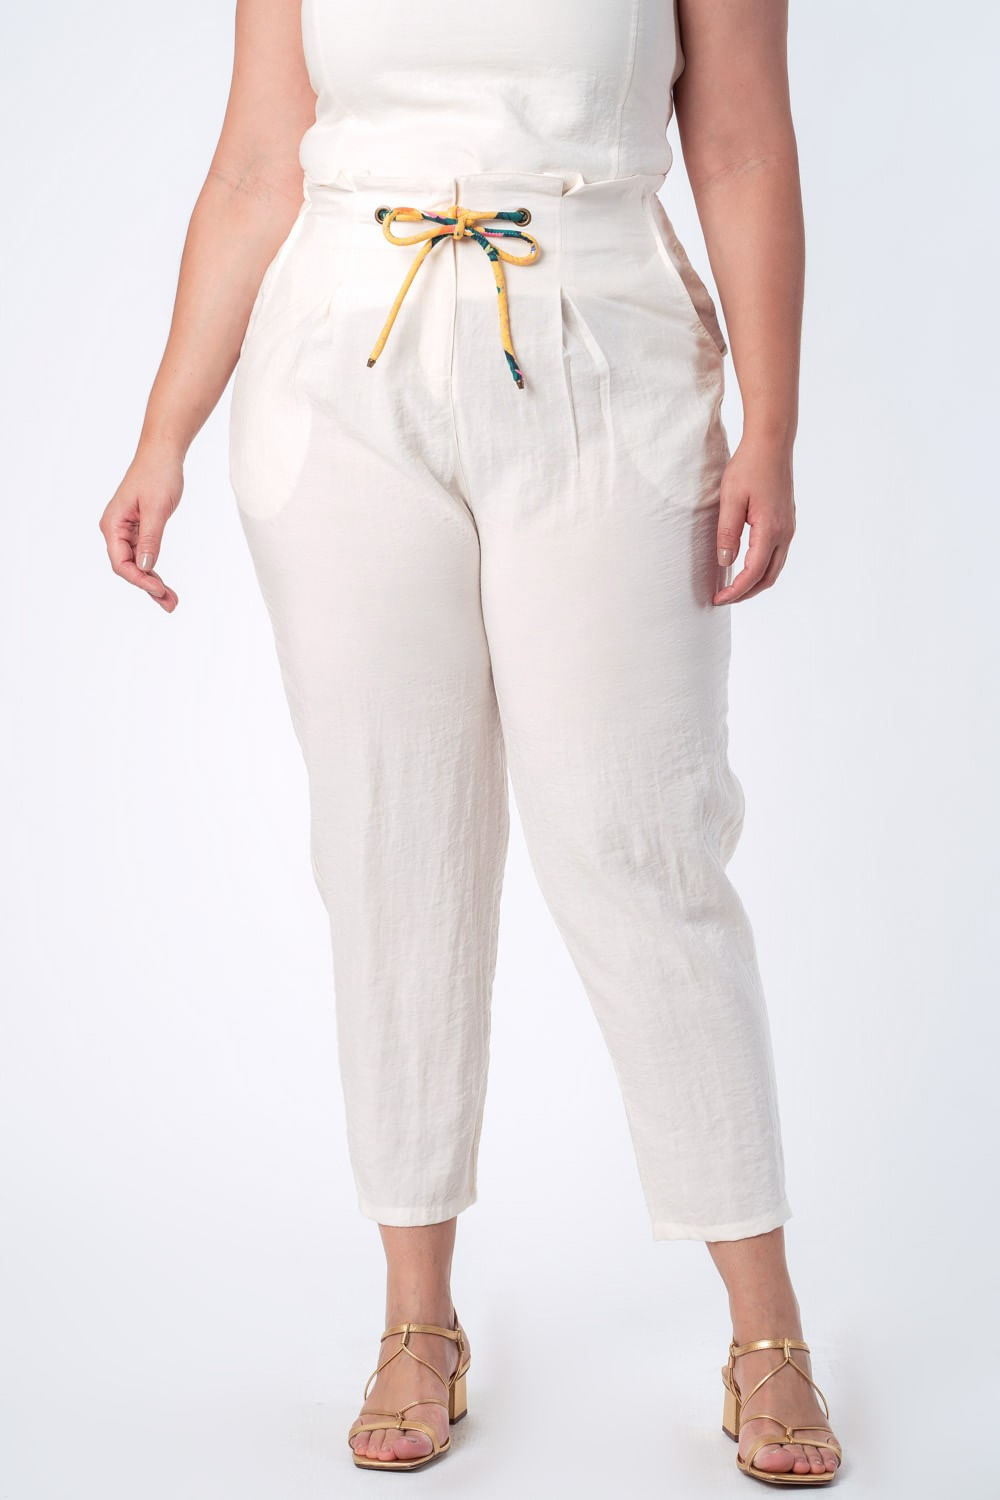 calca_lisa_monaco_plus_size_off_white_23254_3_7efd73bd6de0d9aea1980deced9db65c